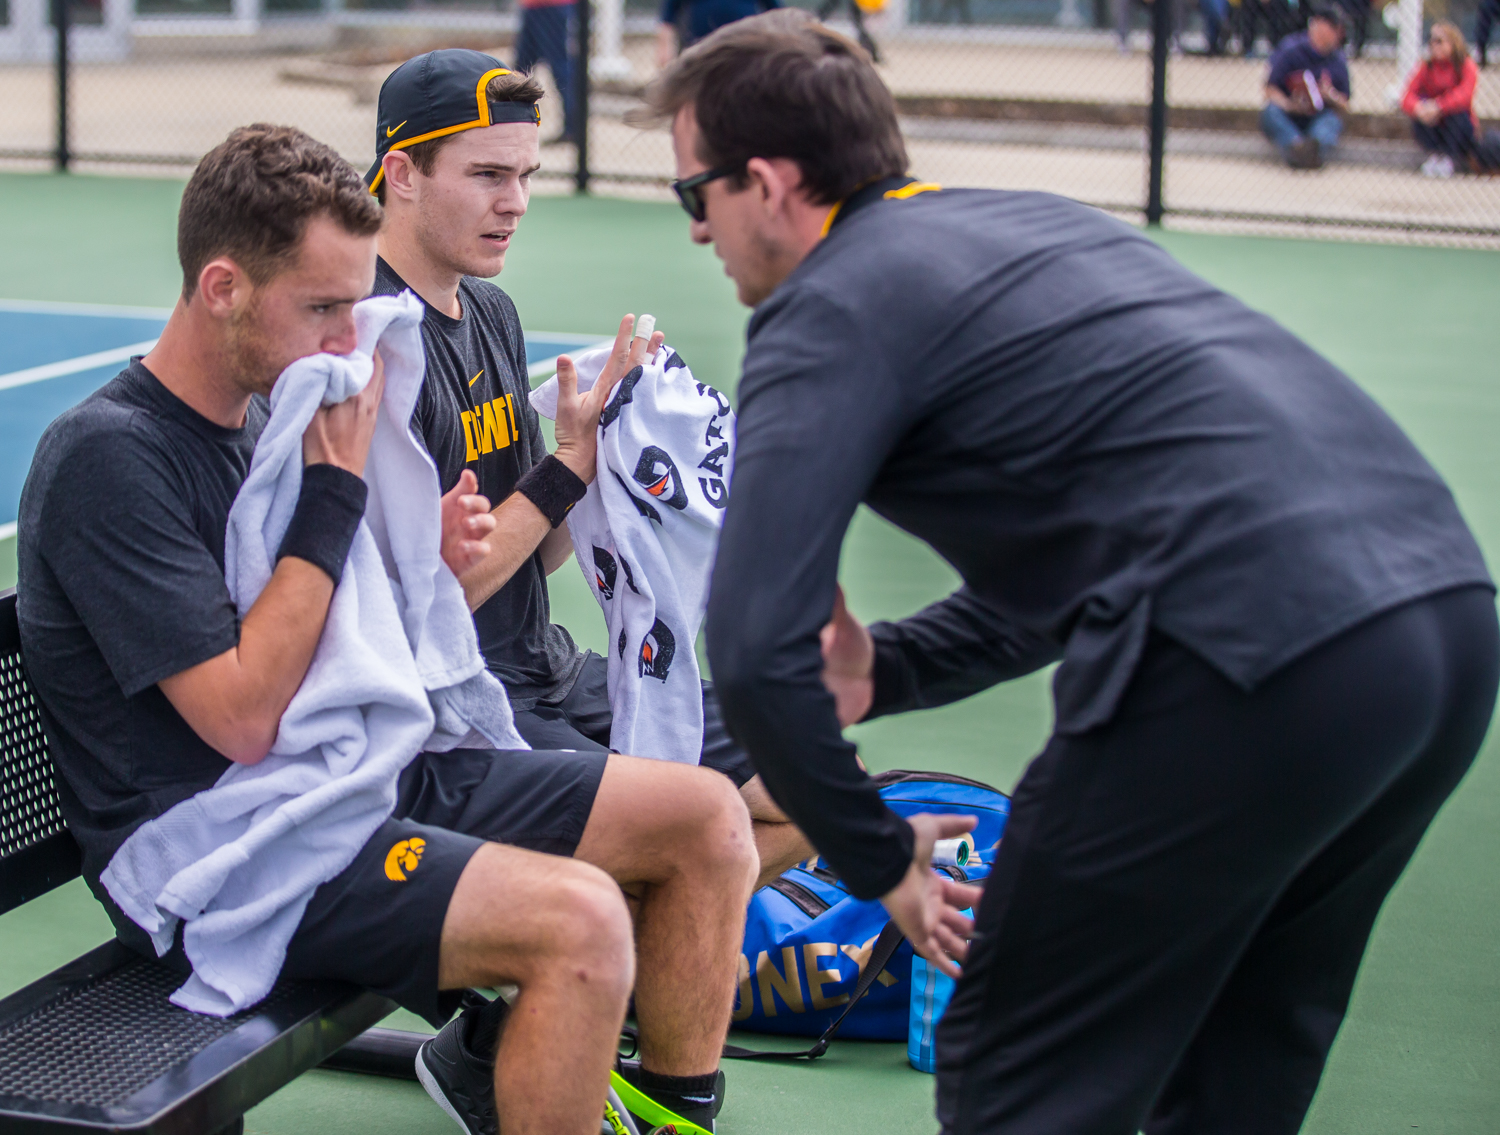 Iowa+assistant+coach+Joey+Manilla+talks+to+the+2-doubles+team+during+a+men%27s+tennis+match+between+Iowa+and+Ohio+State+at+the+HTRC+on+Sunday%2C+April+7%2C+2019.+The+Buckeyes+defeated+the+Hawkeyes%2C+4-1.